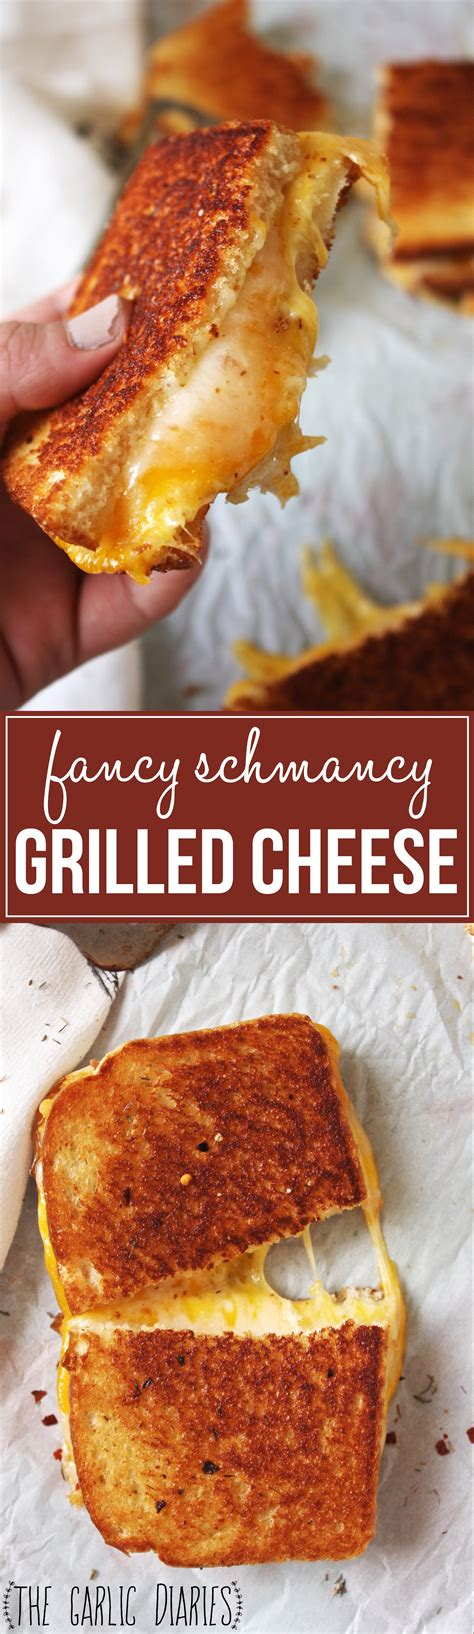 Grilled Cheese fancy schmancy grilled cheese